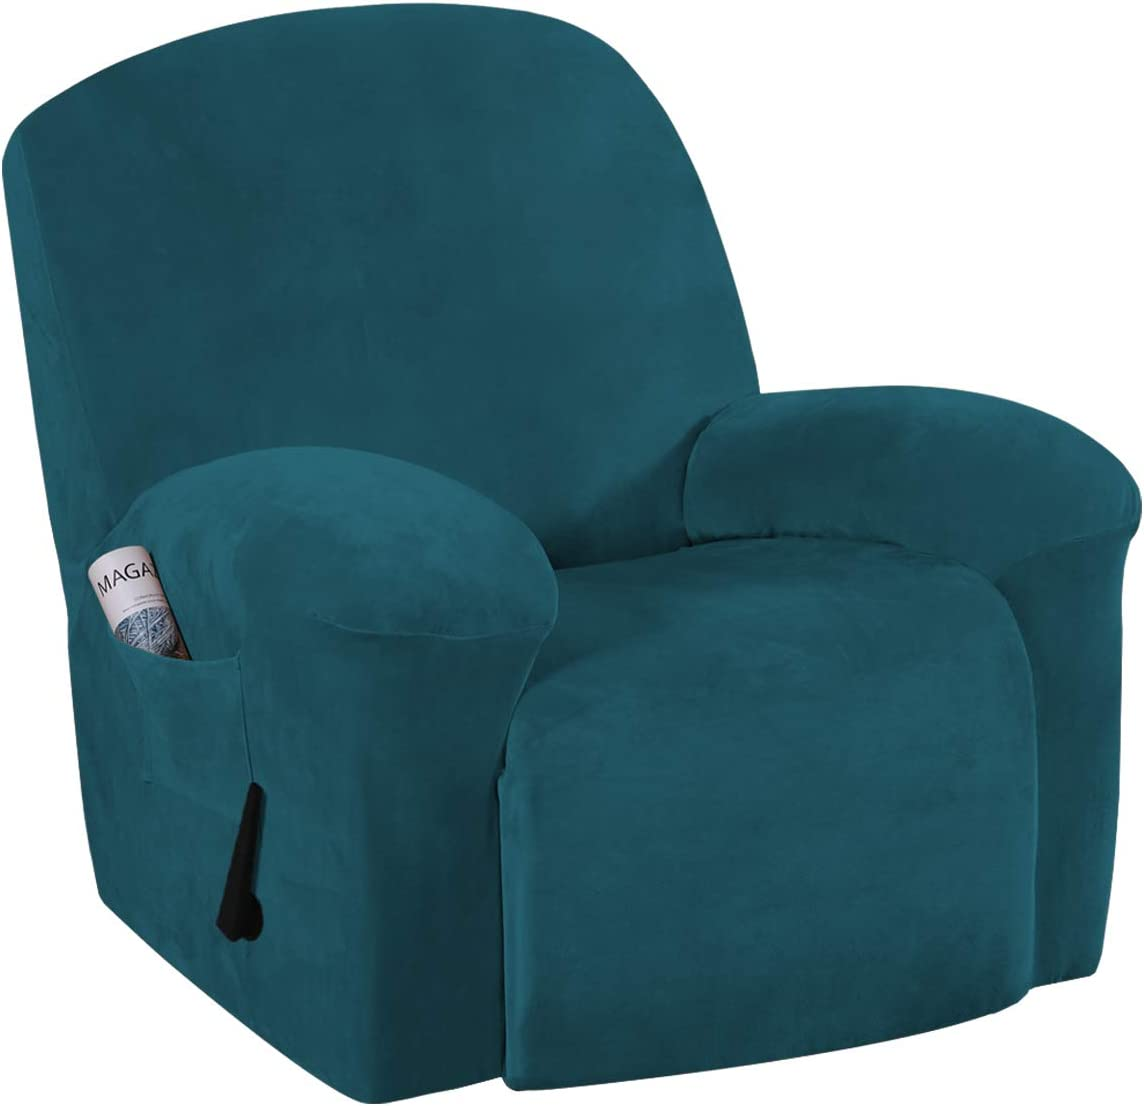 Stretch Recliner Slipcovers Recliner Chair Cover Sofa Furniture Cover 1-Piece Modern Rich Velvet Plush Form Fit Stylish Protector Feature Rich and Soft Fabric (Recliner, Deep Teal)